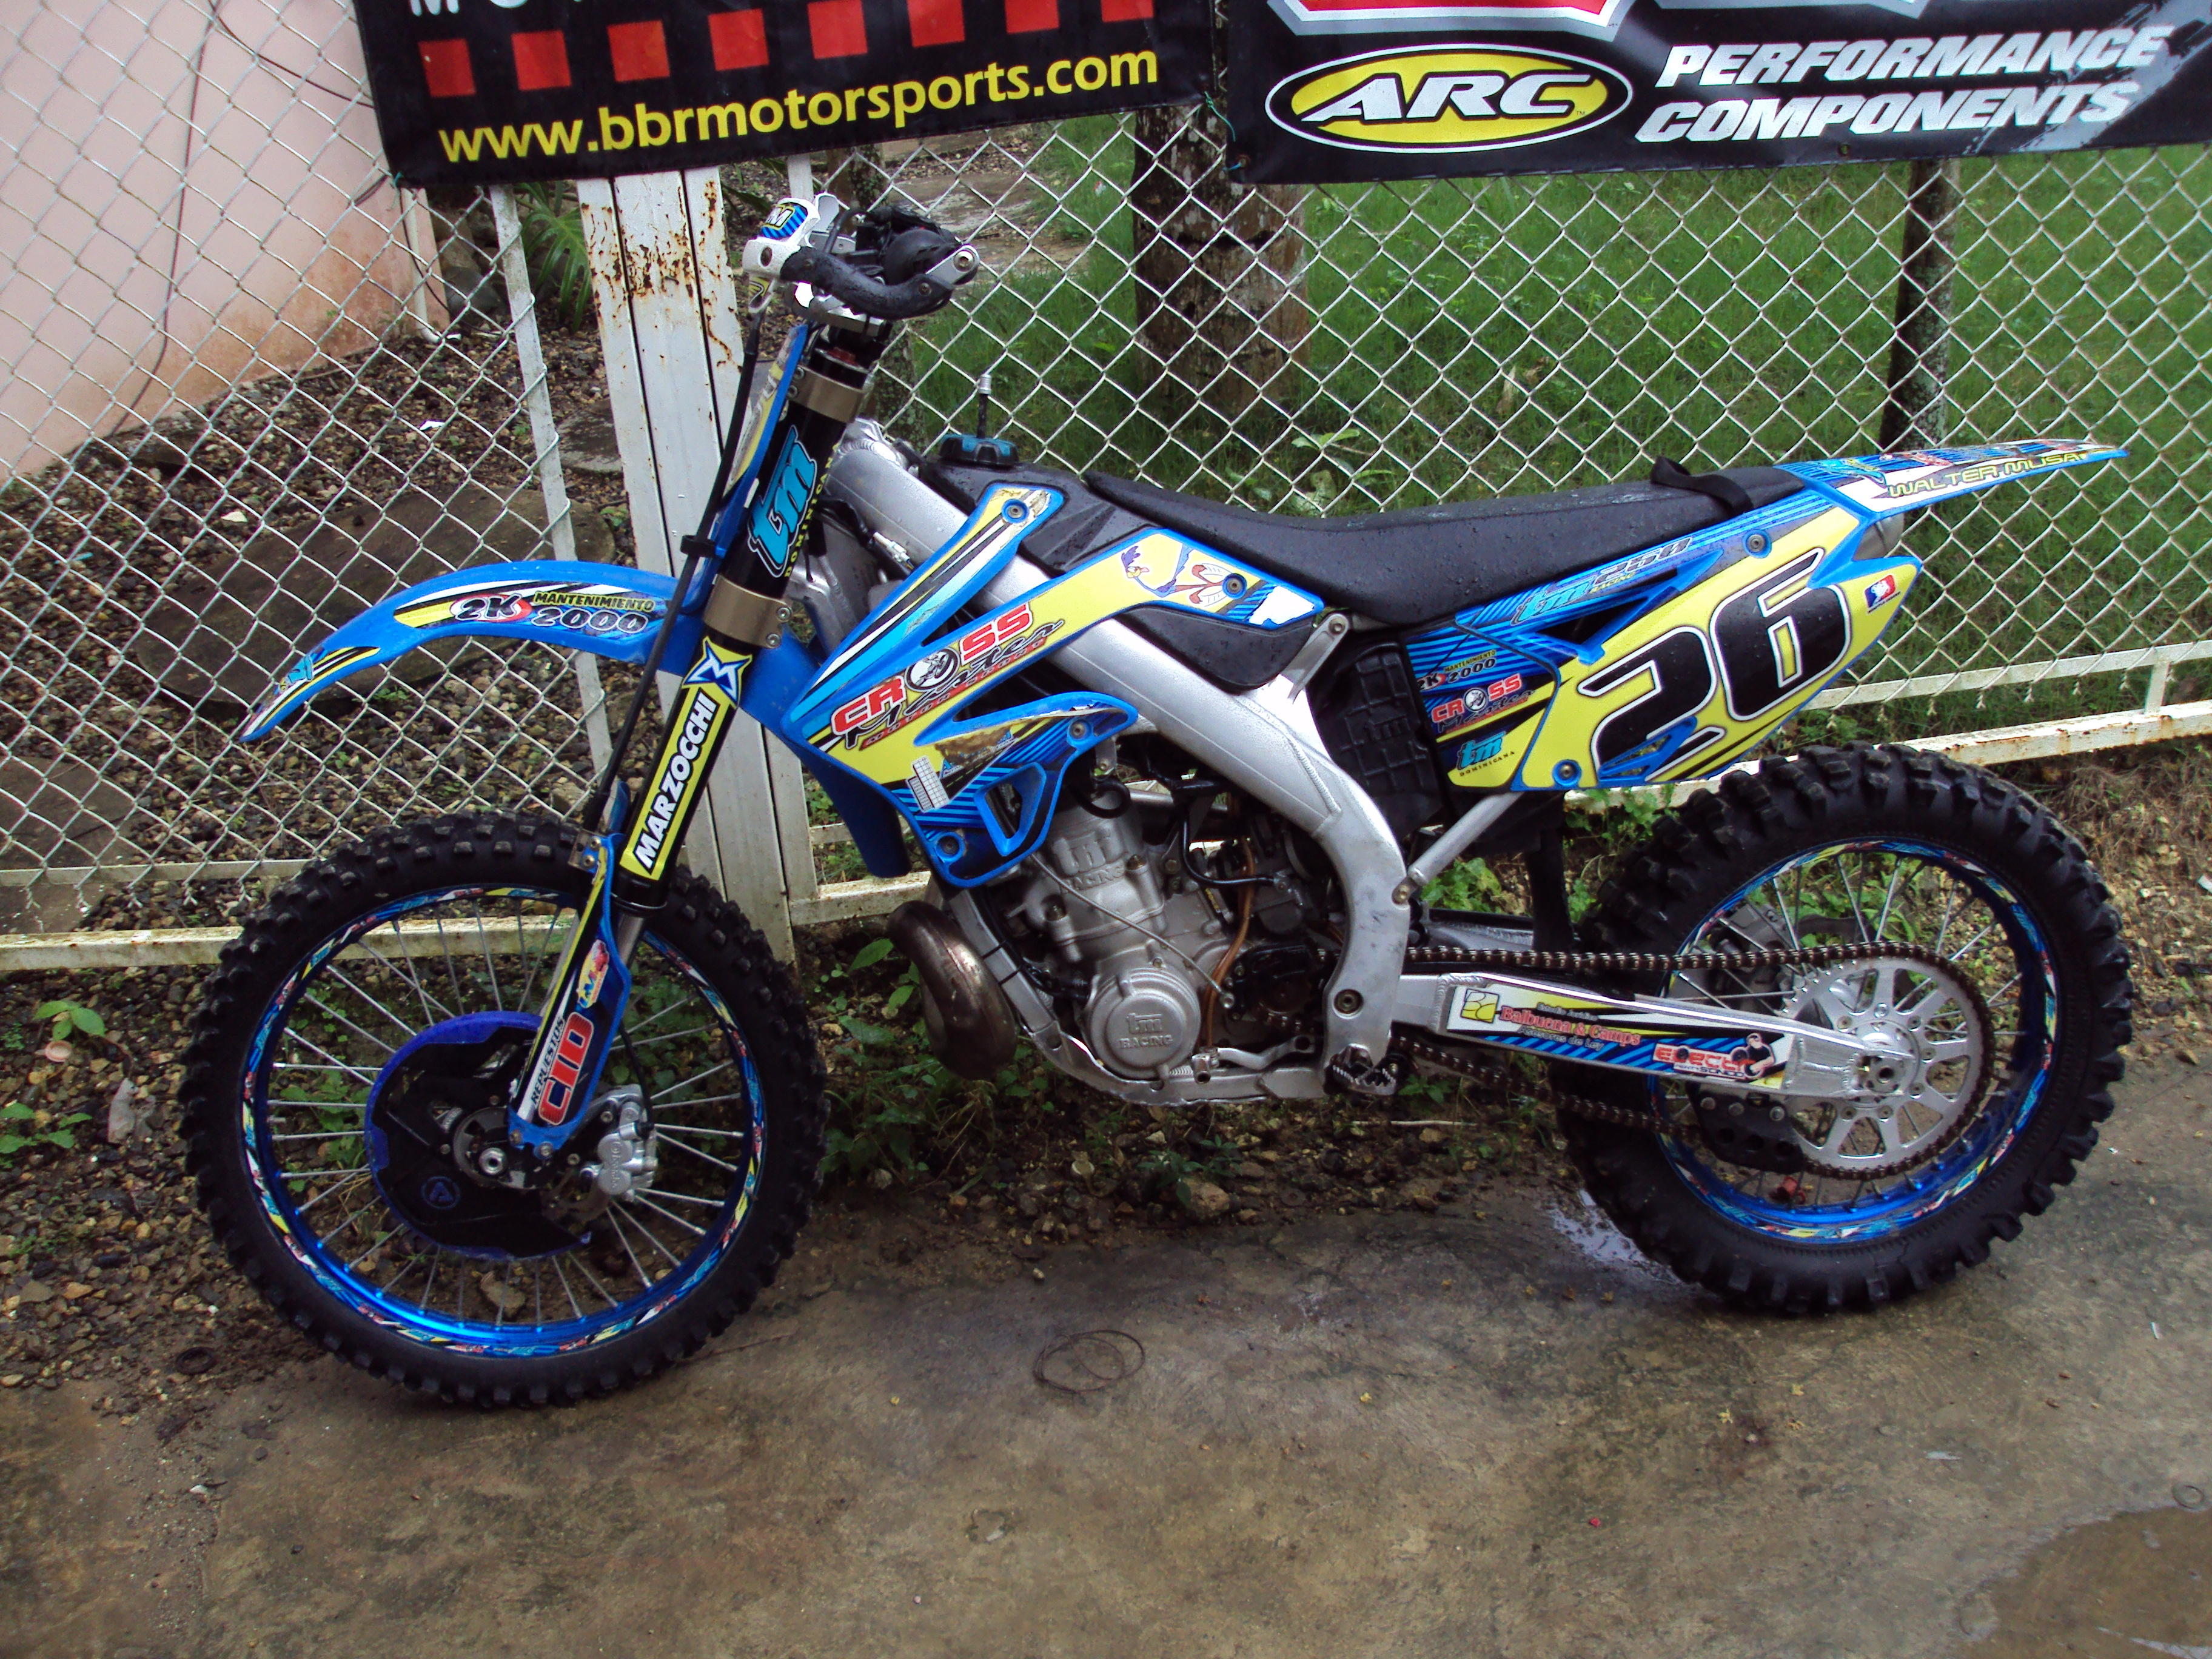 TM racing MX 250 Fi 2010 #11